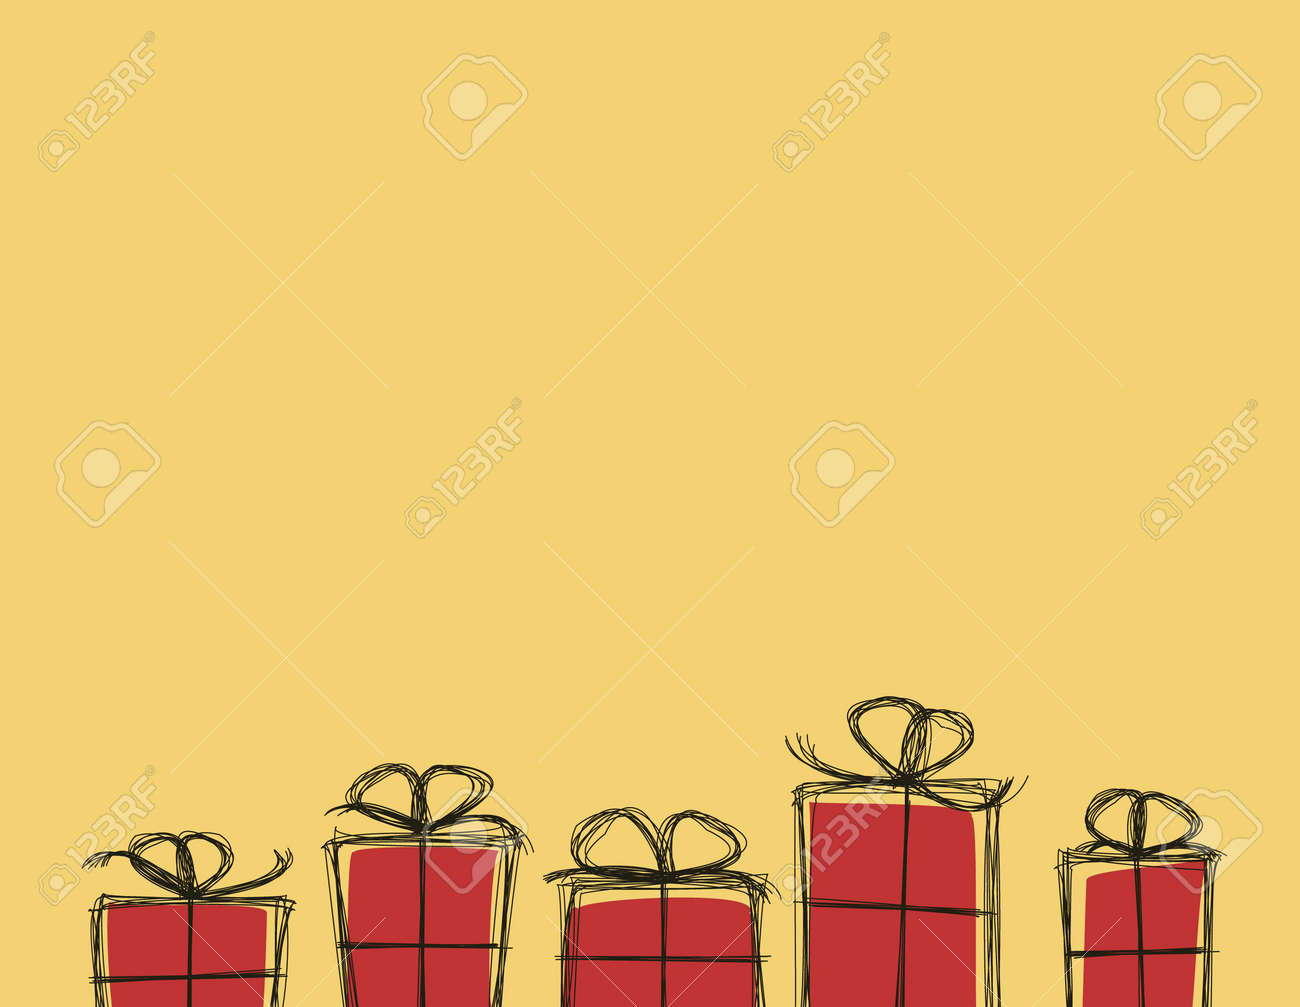 Abstract hand drawn gift boxes card. Vector image. Stock Vector - 17628442